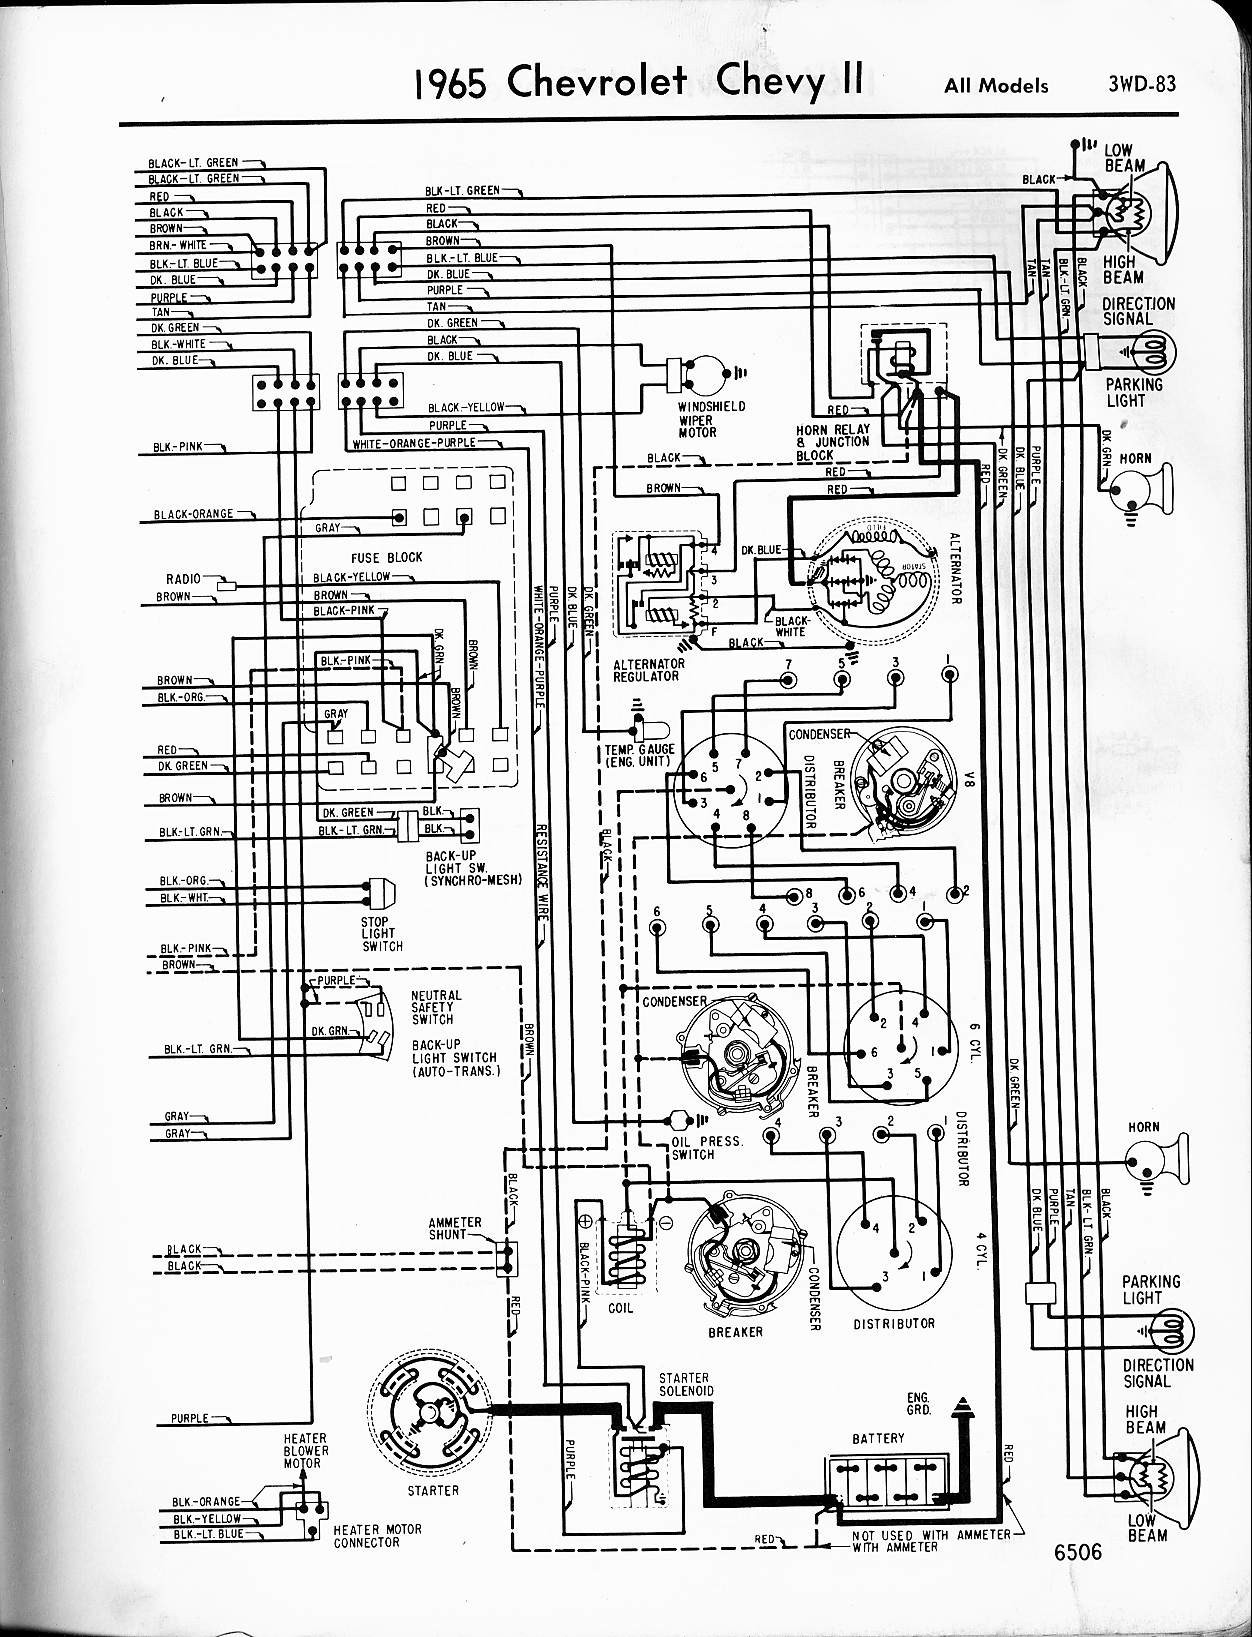 1972 Chevy C10 Wiper Wiring Diagram Trusted Diagrams Corvette Dash System 1970 Free Vehicle U2022 Truck Motor